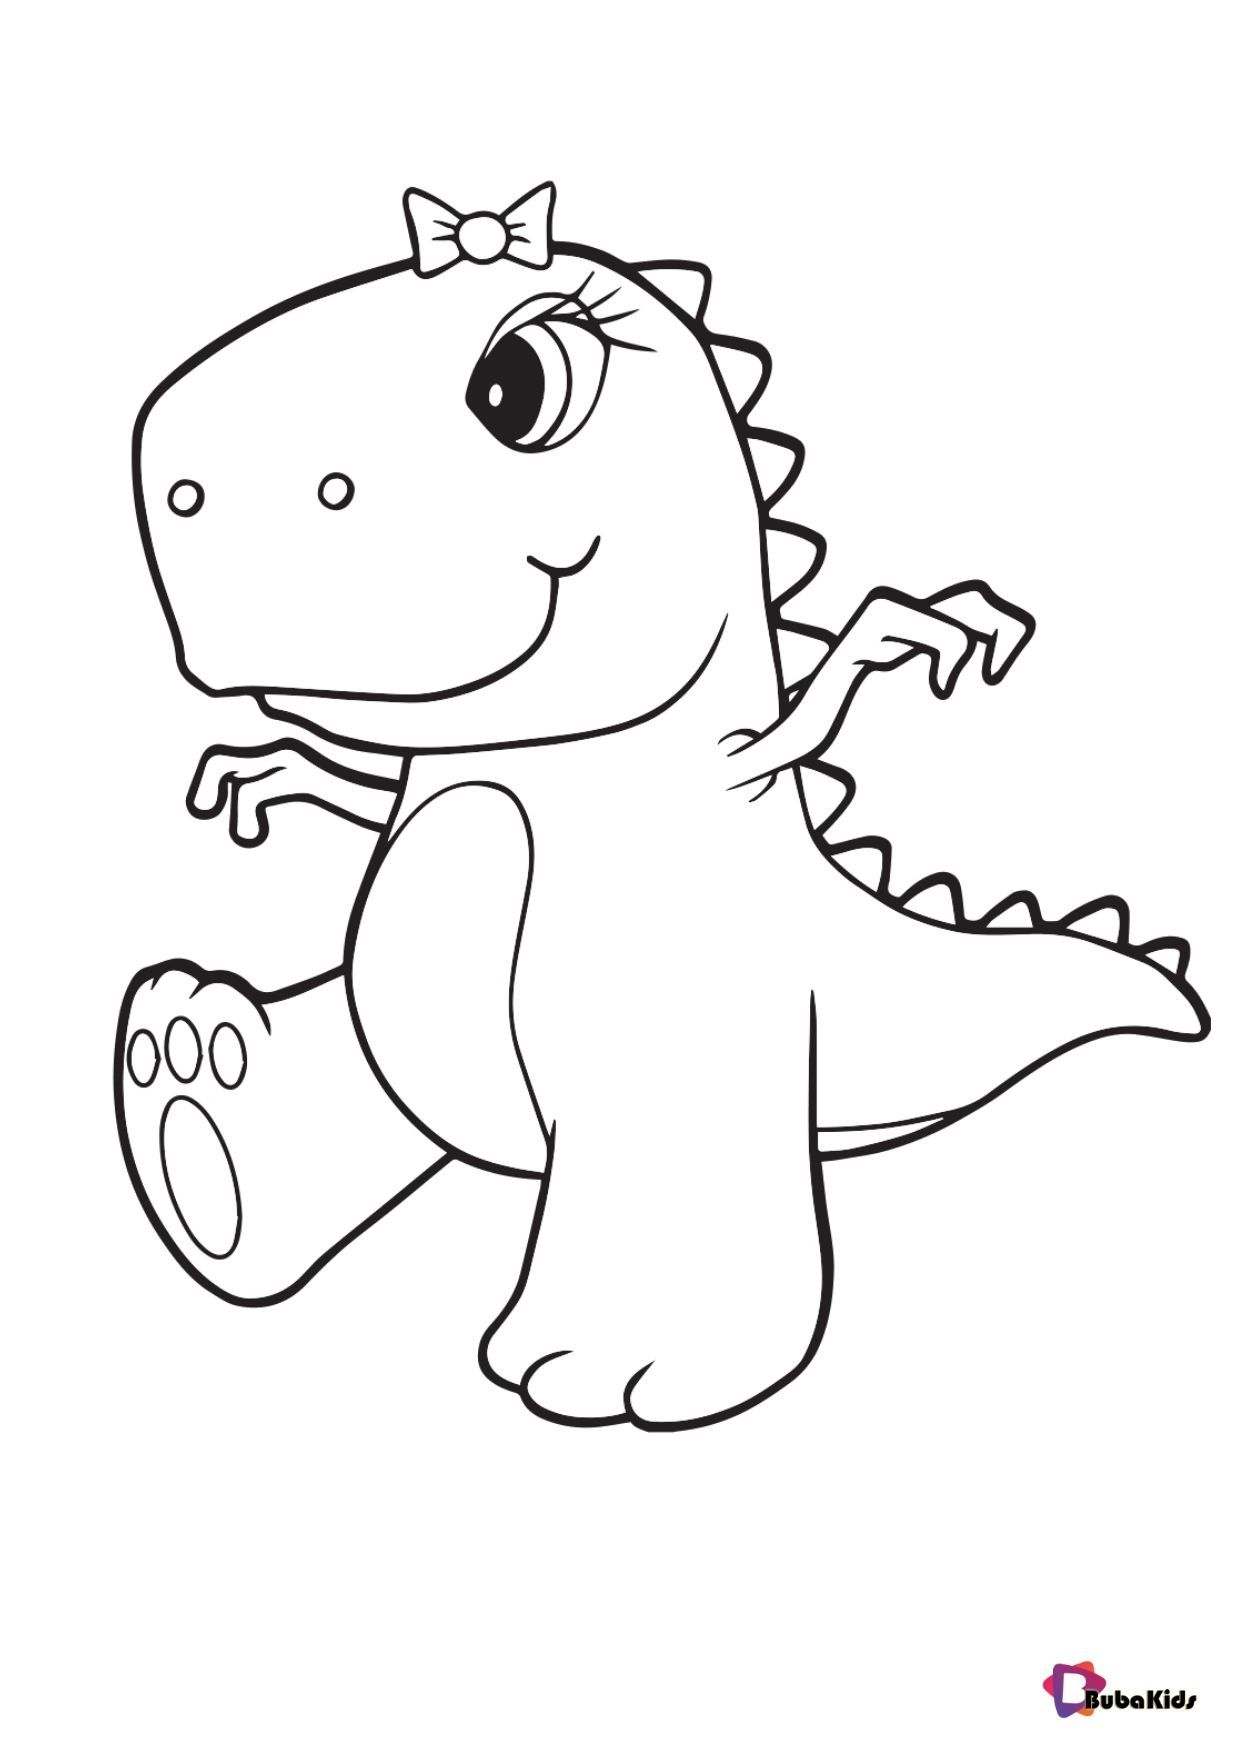 Pin On Dinosaurs Coloring Pages In 2021 Dinosaur Coloring Pages Baby Coloring Pages Puppy Coloring Pages